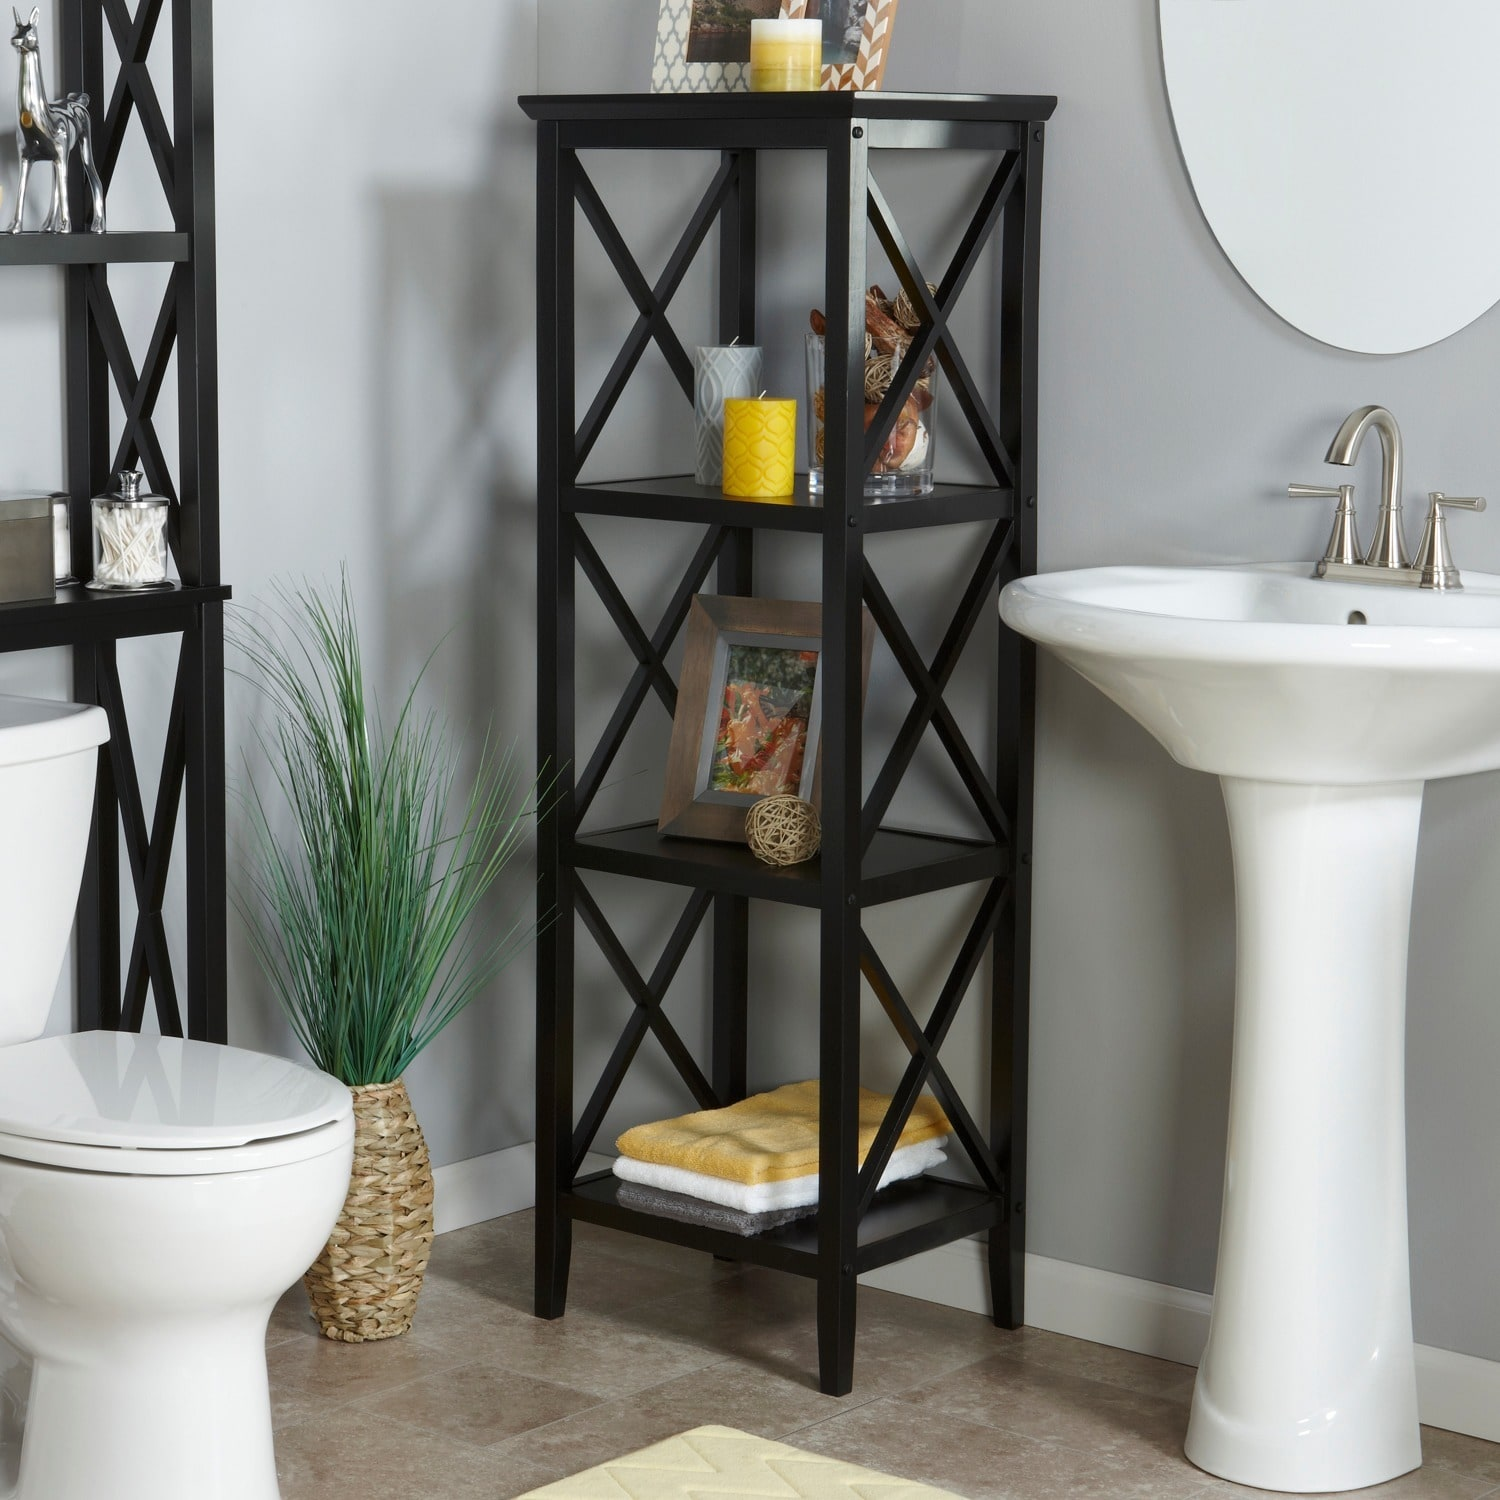 Shop RiverRidge Home X Frame Bathroom Towel Tower   Free Shipping Today    Overstock.com   8316186